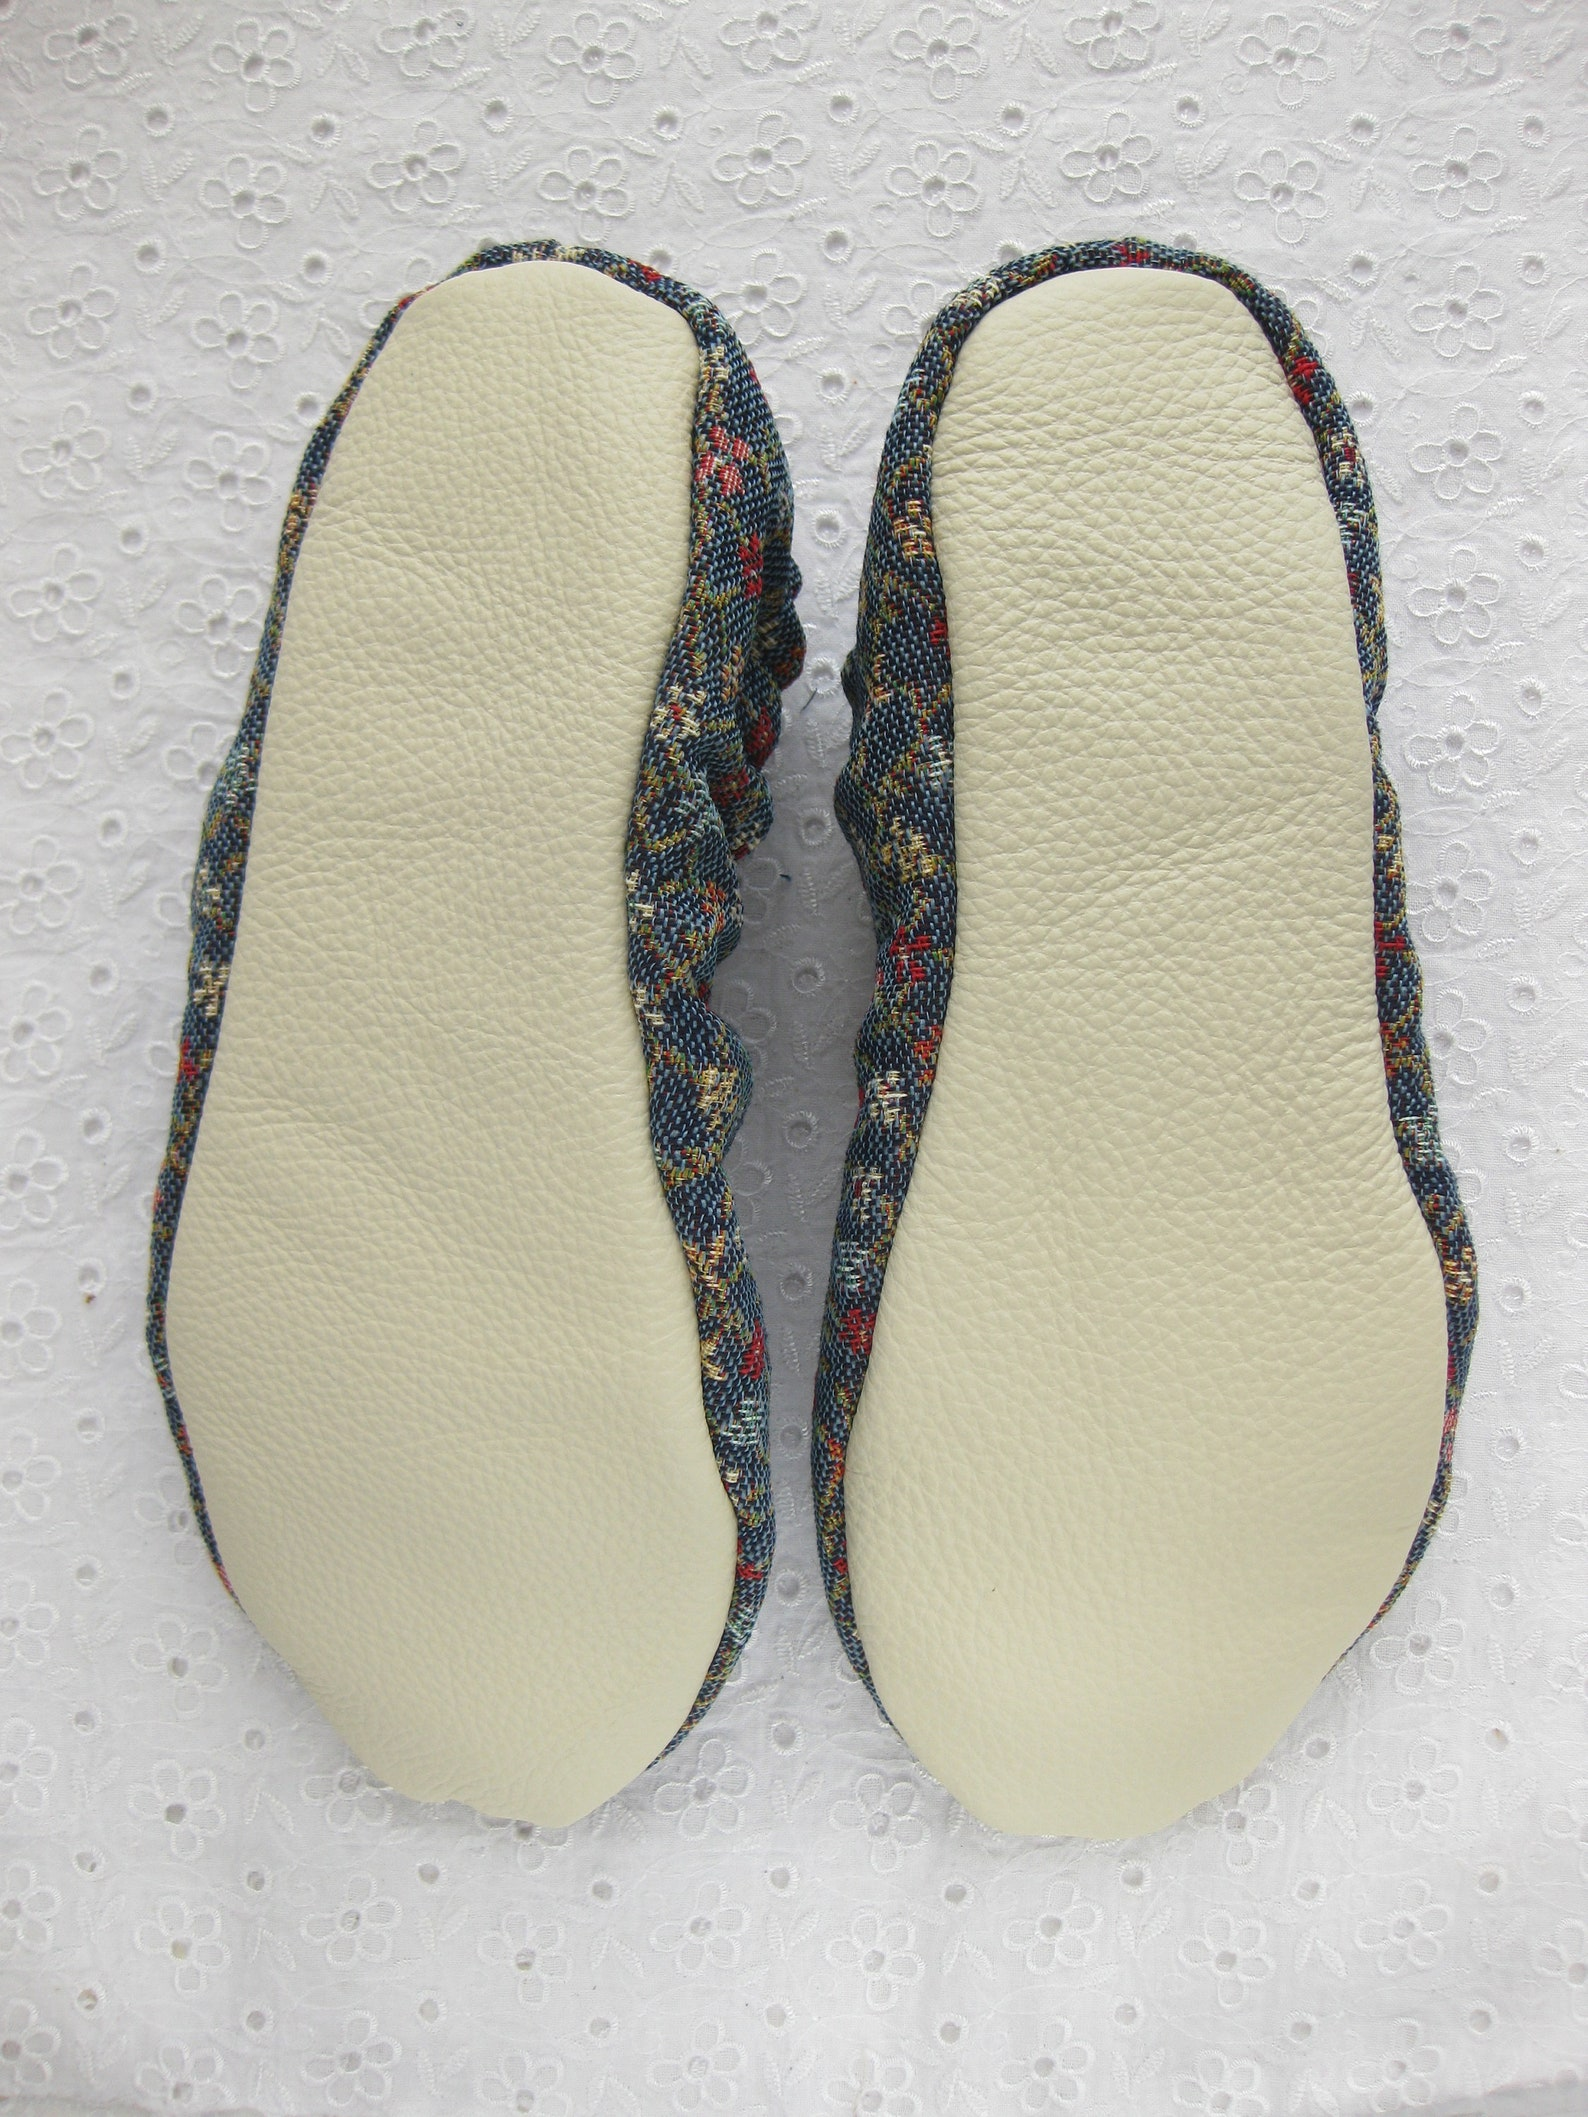 womens slippers, tapestry ,ballet flats, cotton slippers, healthy home shoes, soft slippers, handmade slippers, women slippers,